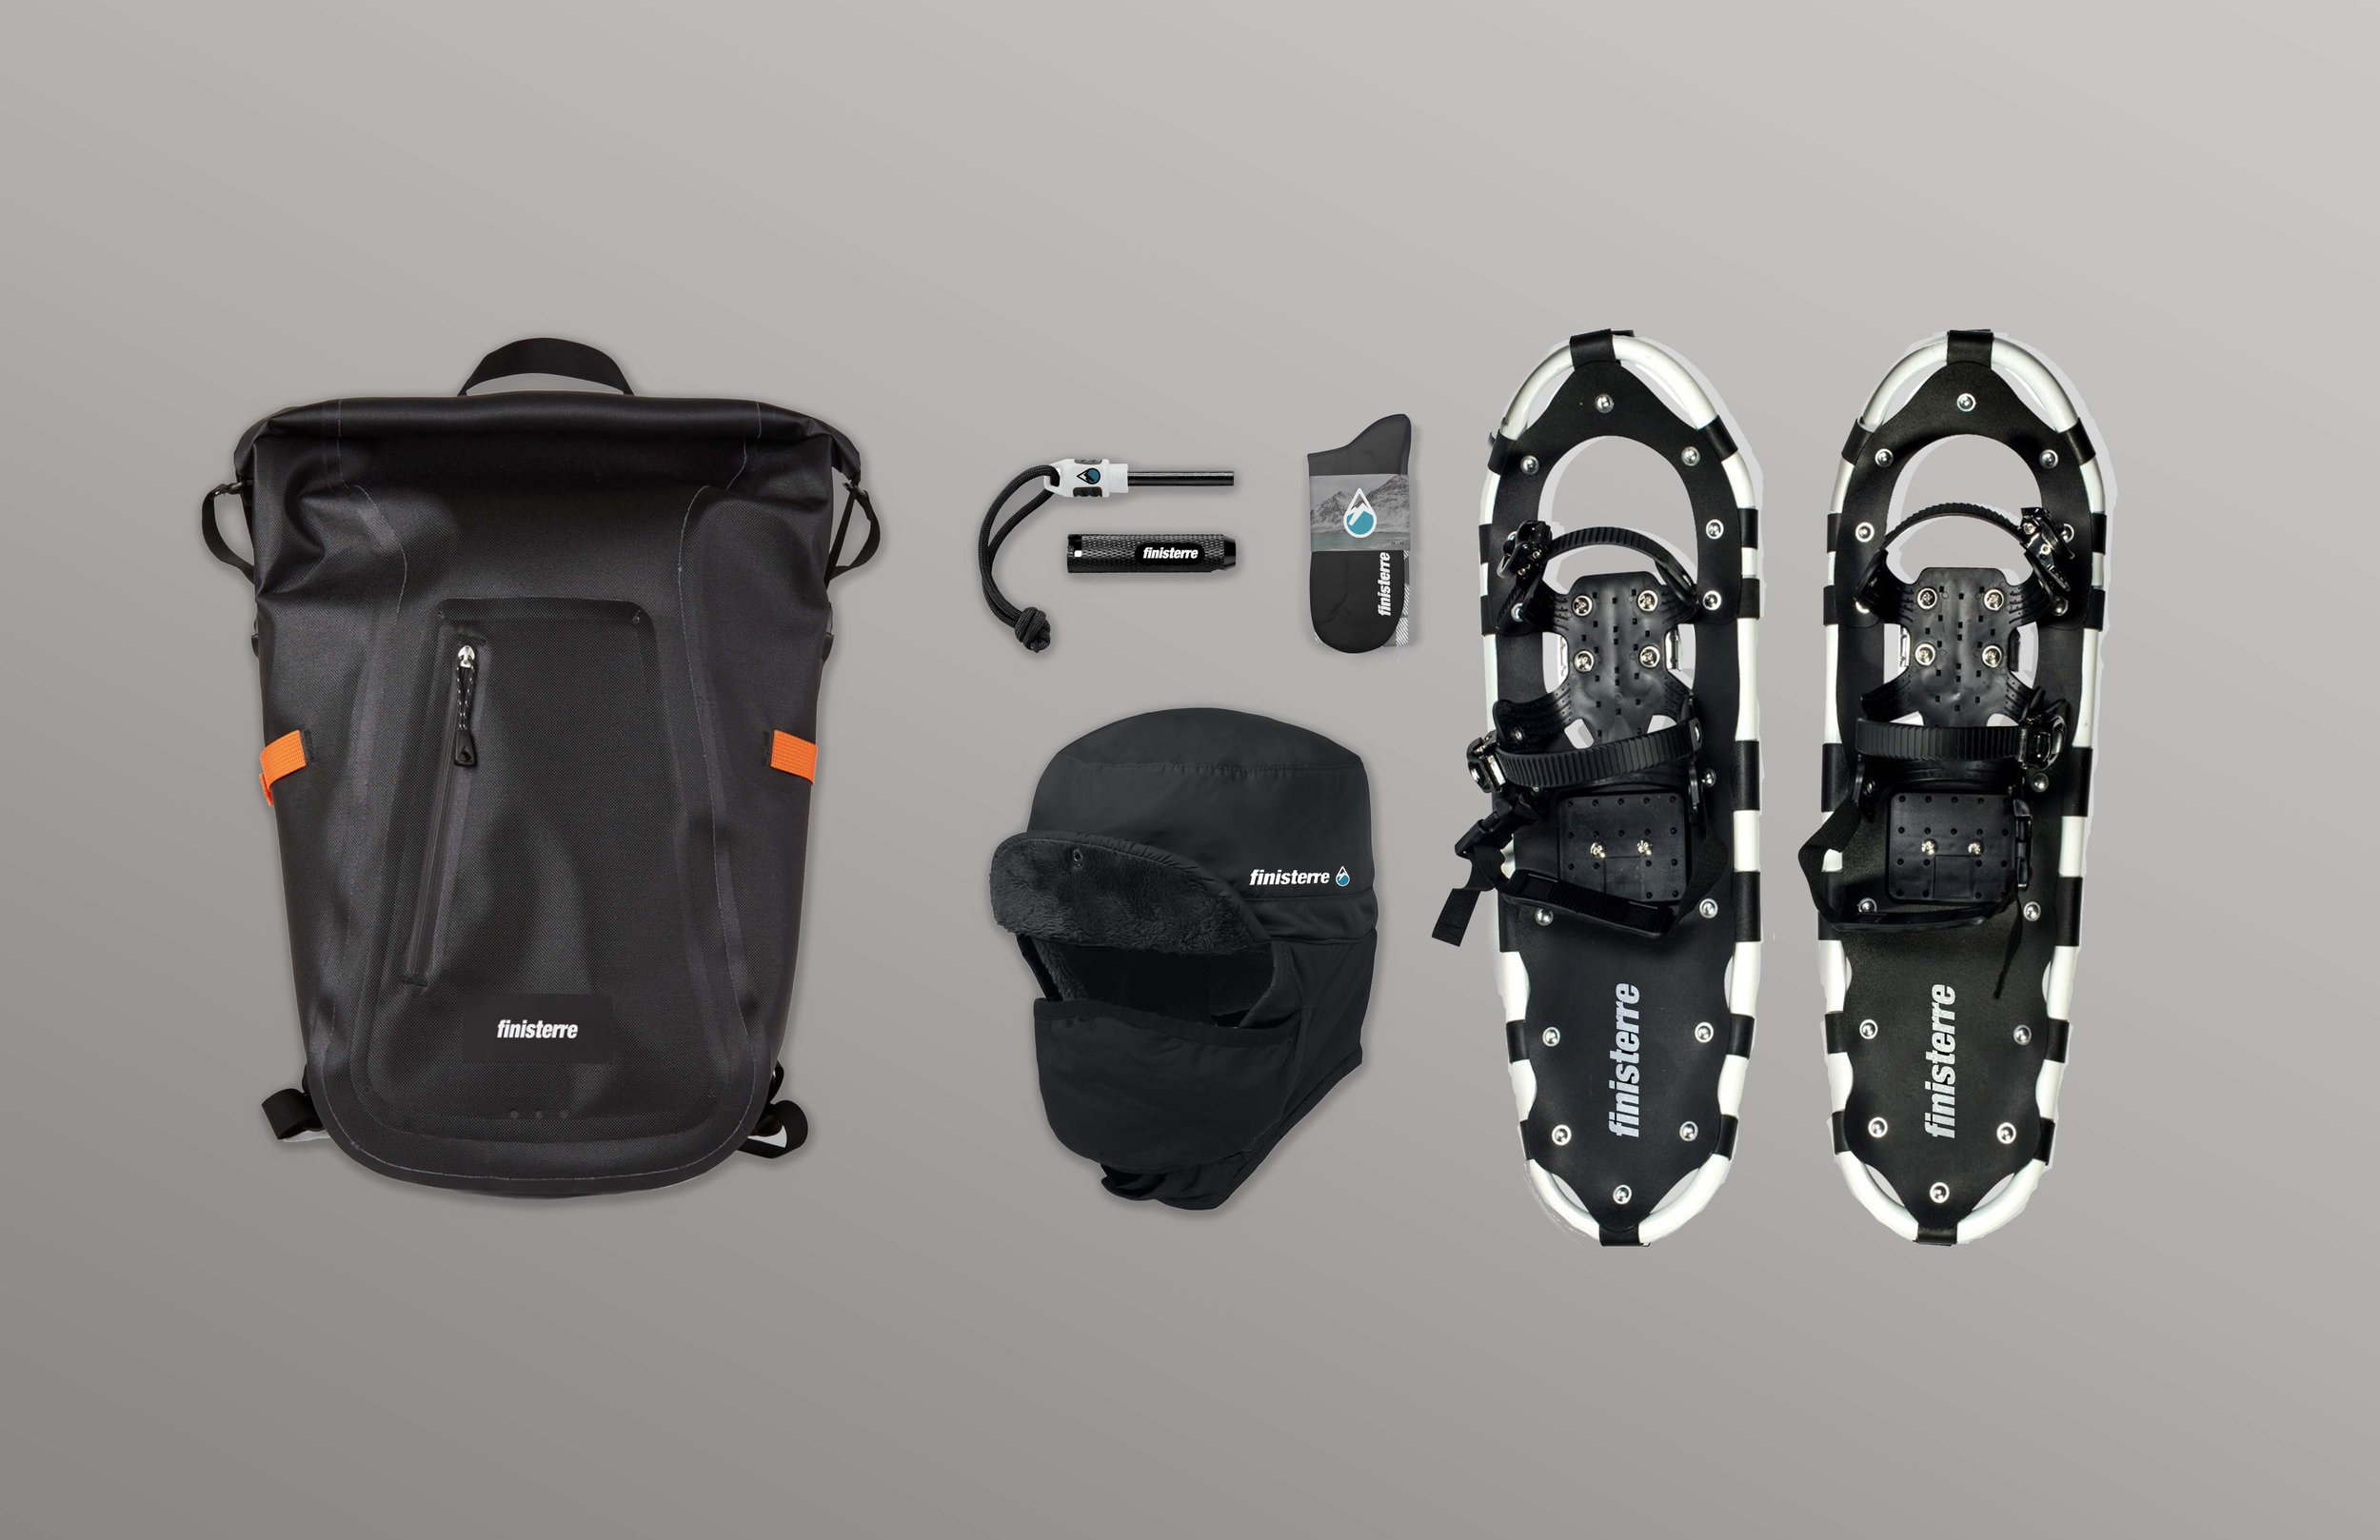 From L to R: Waterproof pack, fire starter, waterproof thermal socks, snowshoes, and snow hat with face mask attachment.